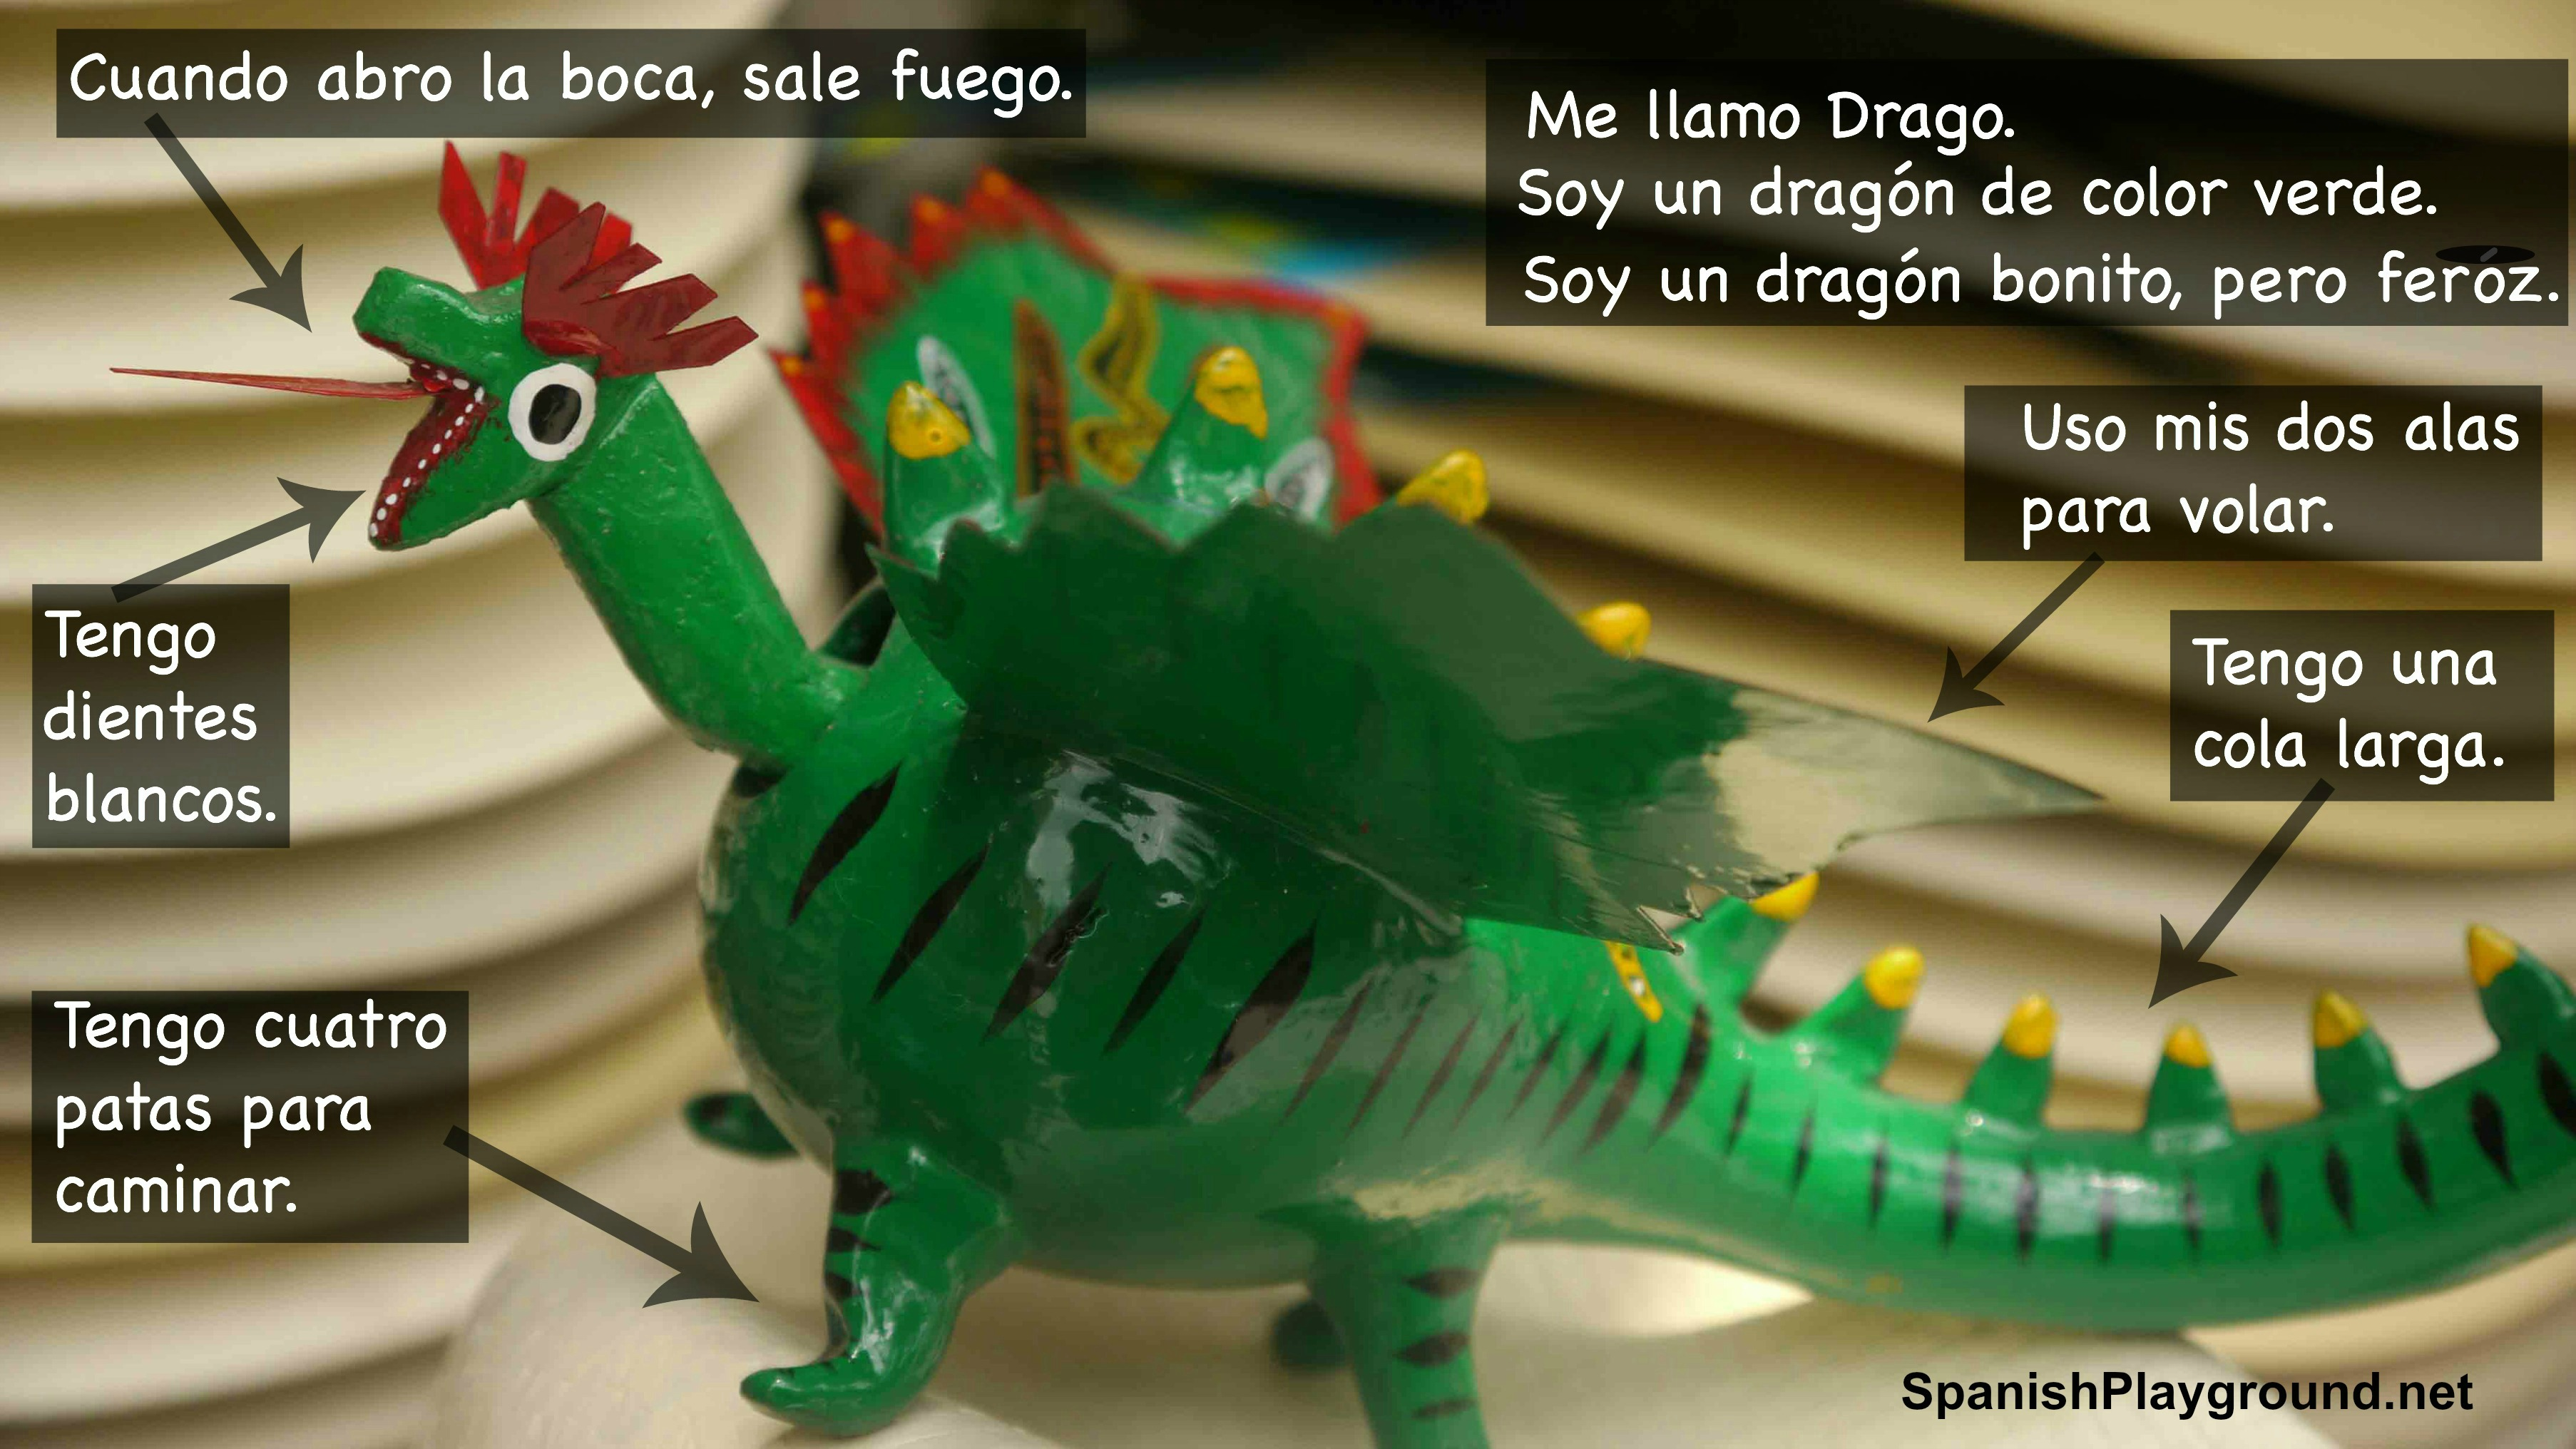 Spanish Reading Comprehension: Dragon Photo - Spanish Playground